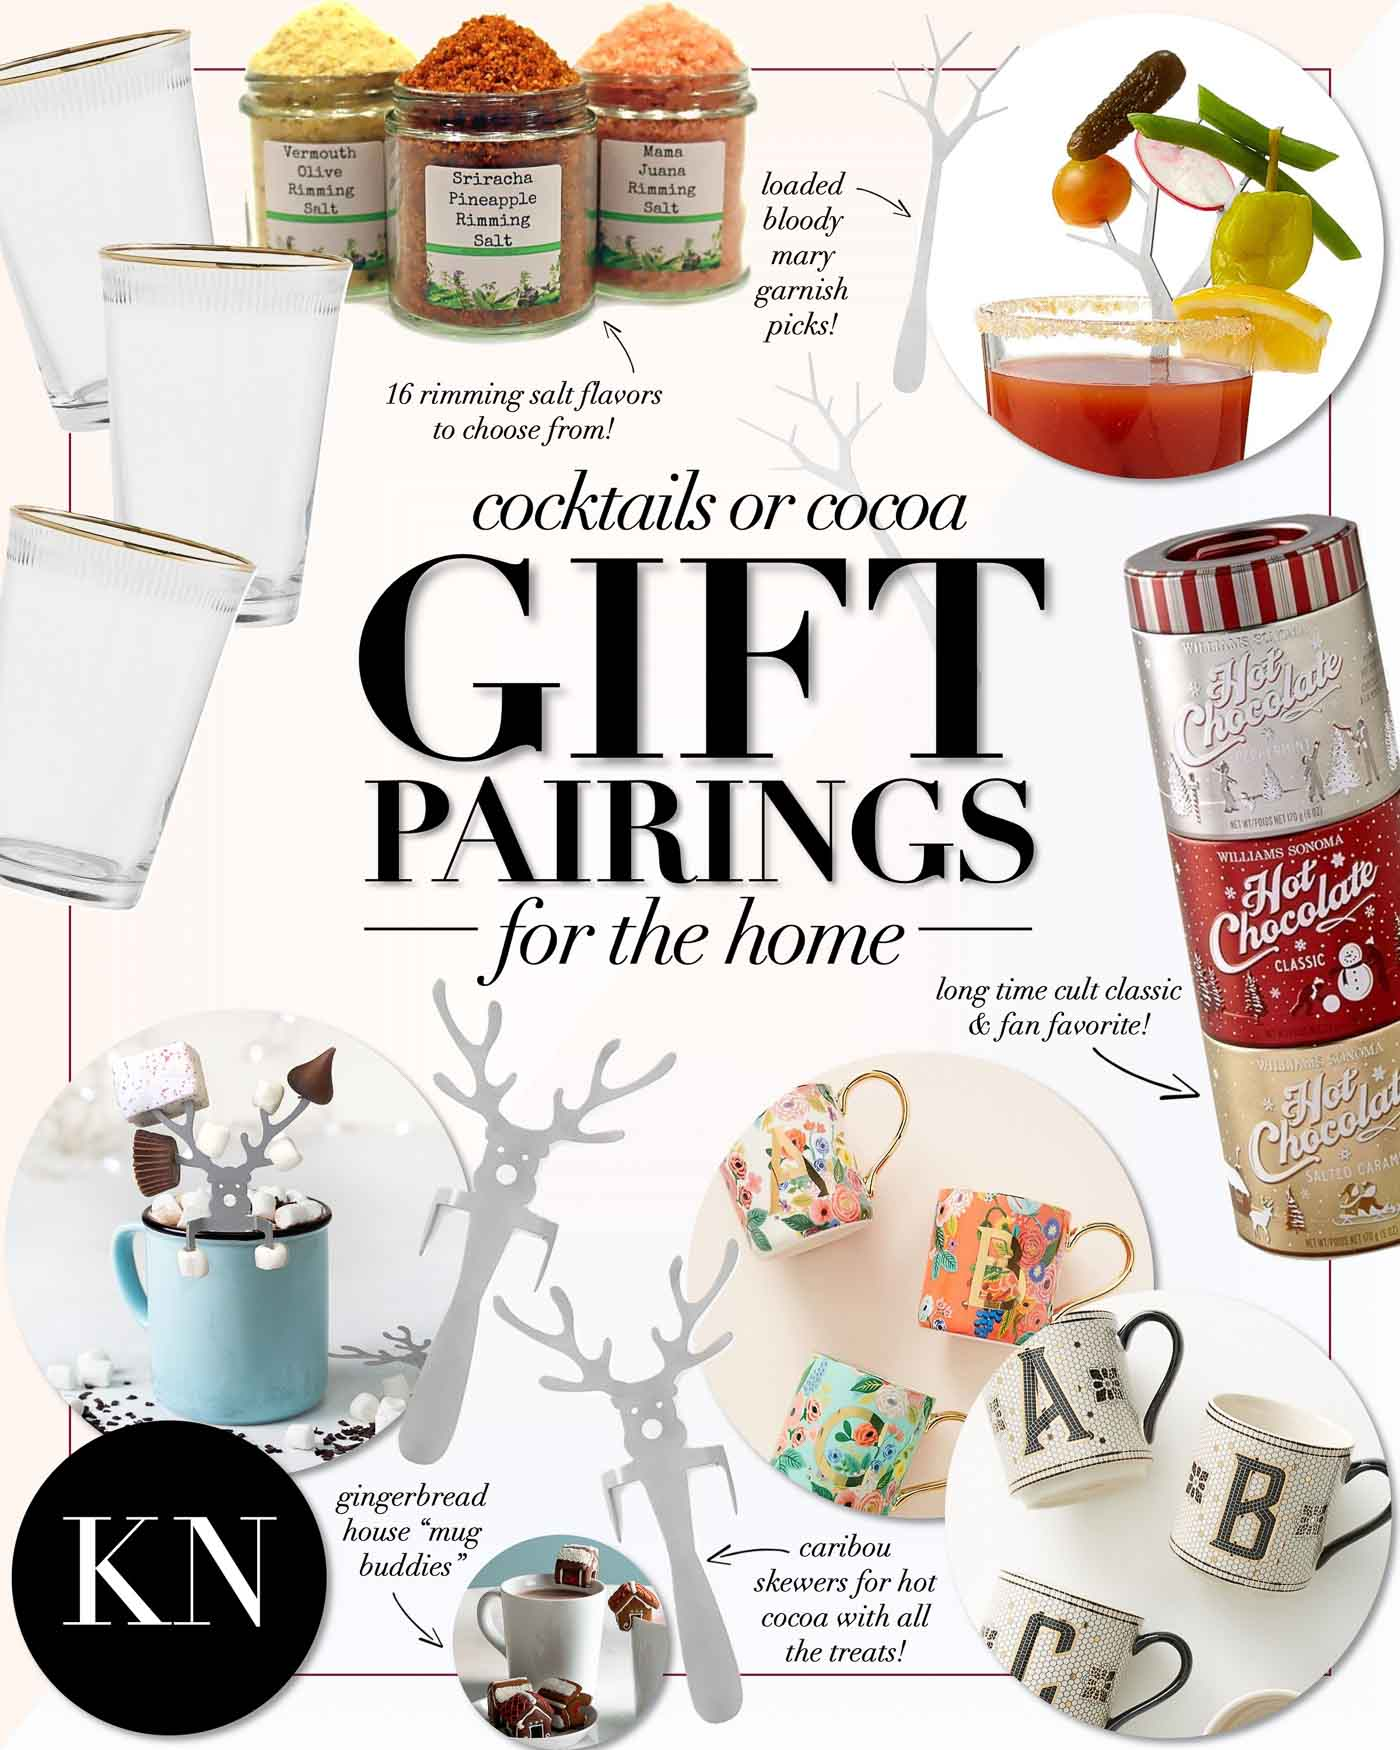 Themed Christmas Gift Pairing Ideas for the Home